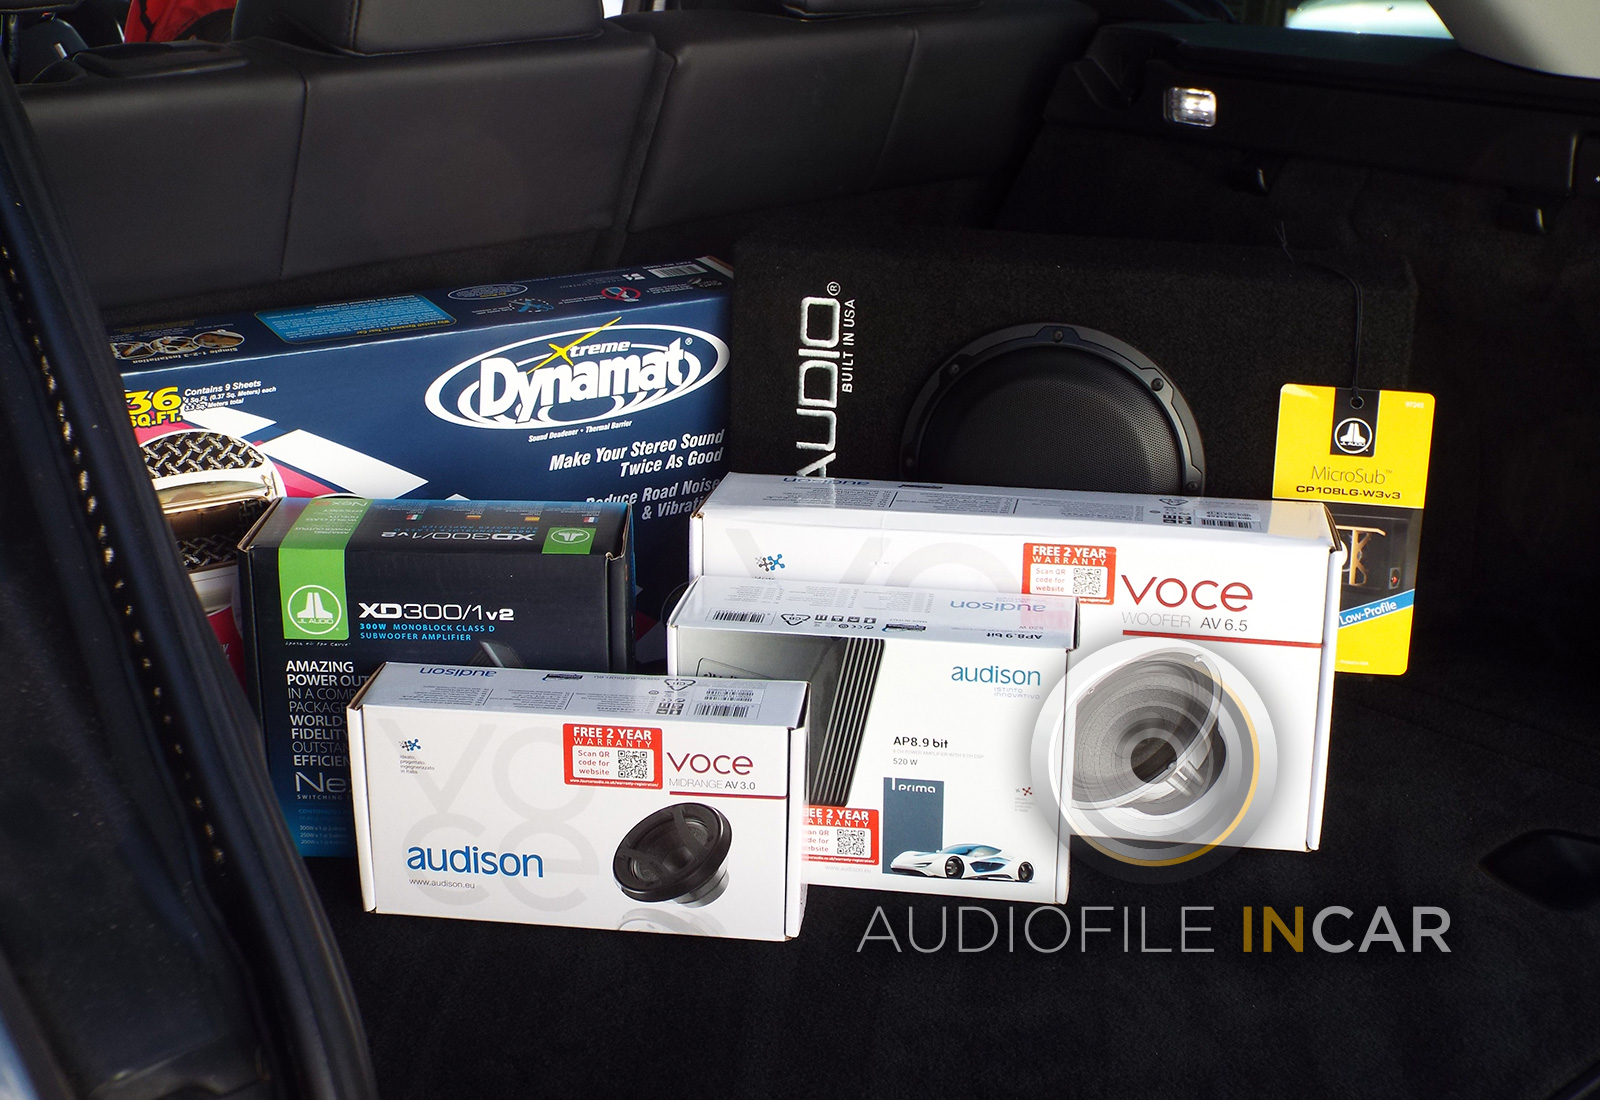 The equipment used in the Audiofile-Incar Range Rover Premium Audio Upgrade.